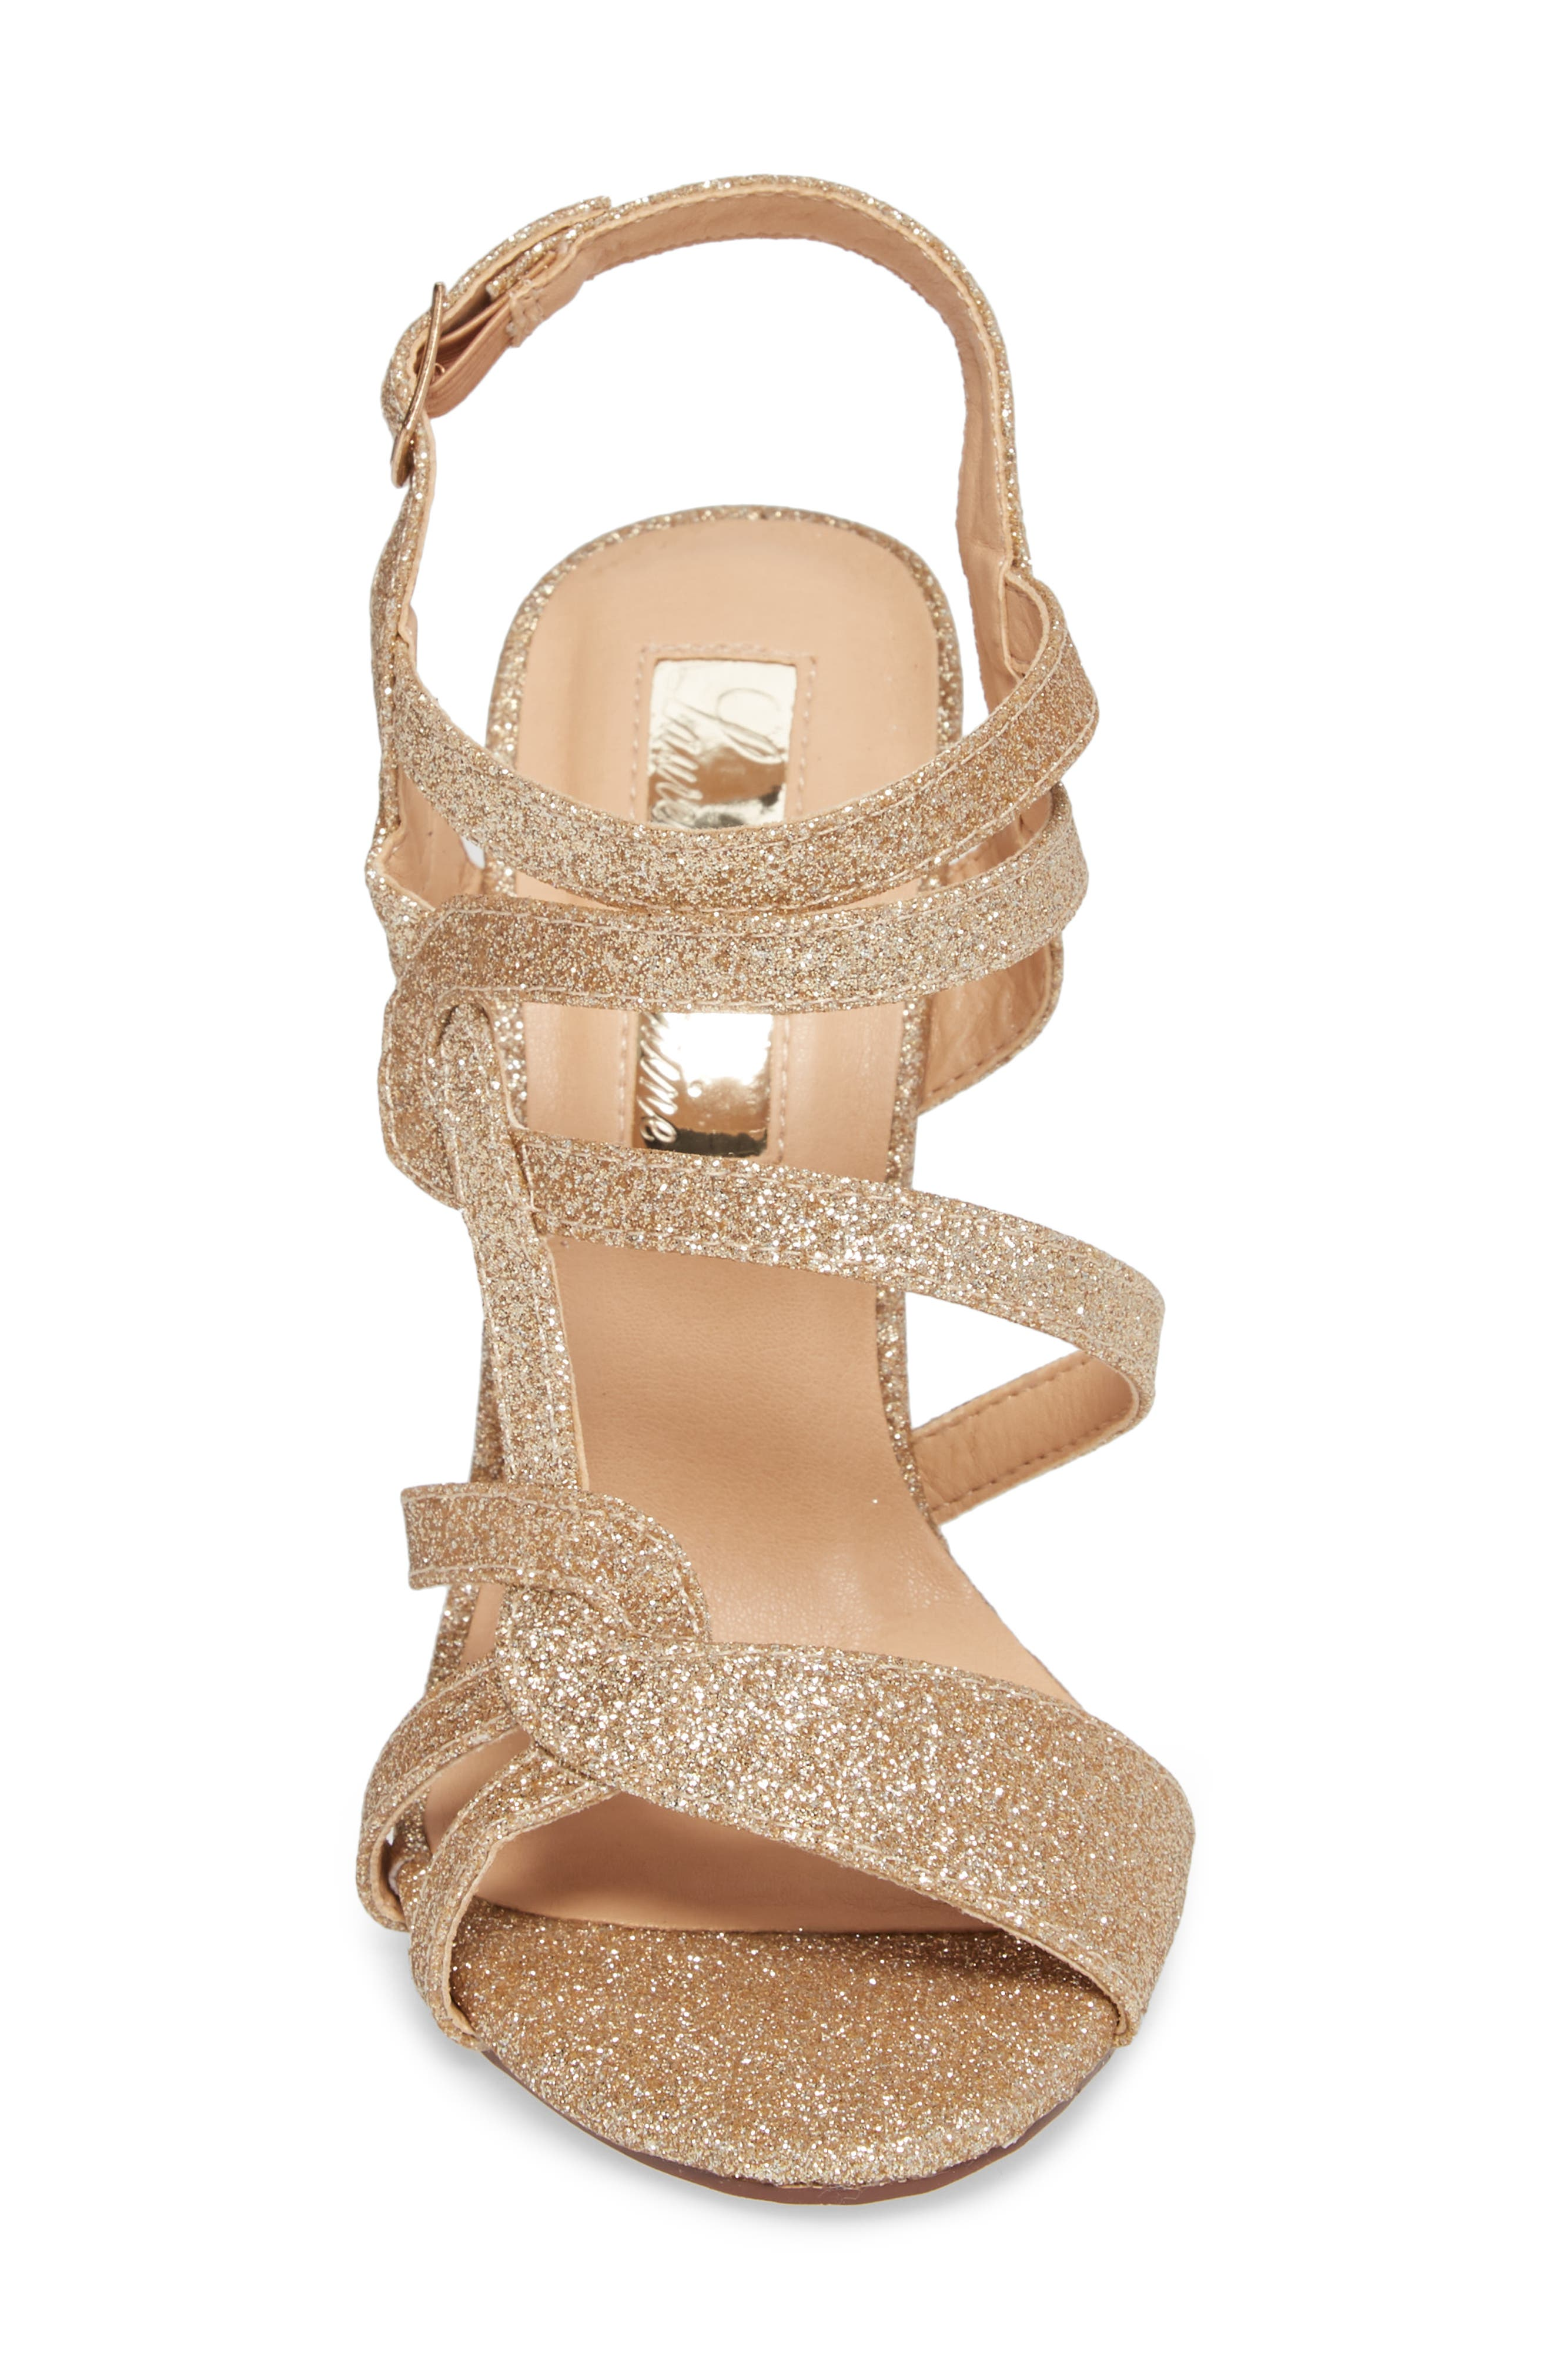 LAUREN LORRAINE, Gidget Sandal, Alternate thumbnail 4, color, NUDE FABRIC